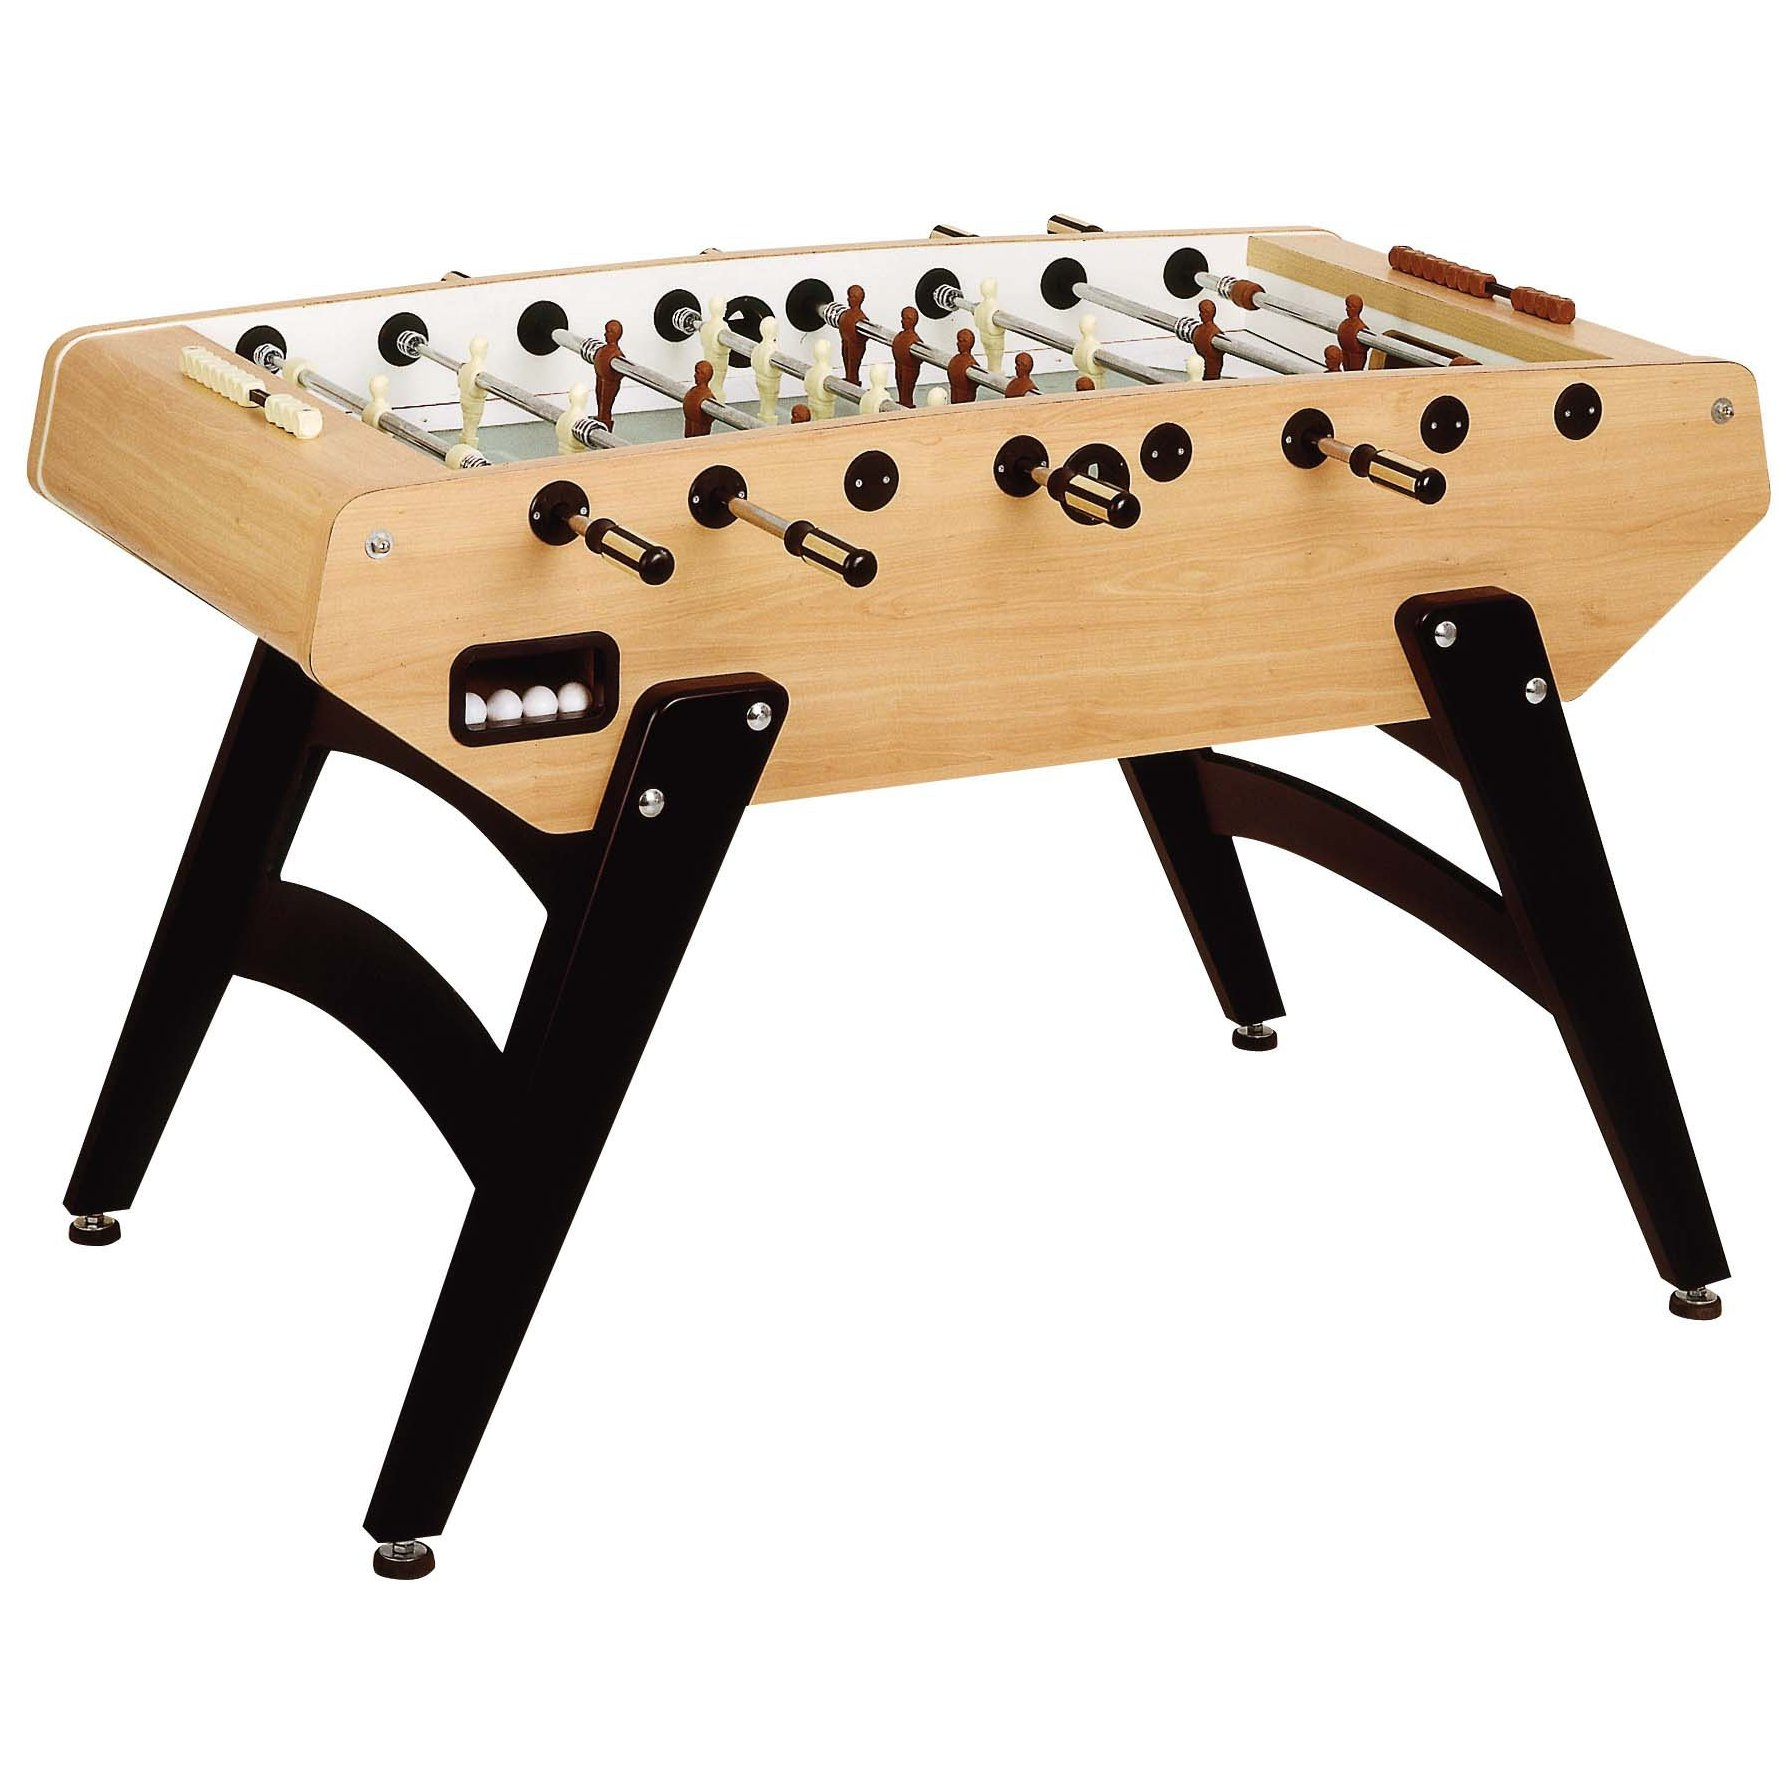 Garlando G5000  Table Football Table